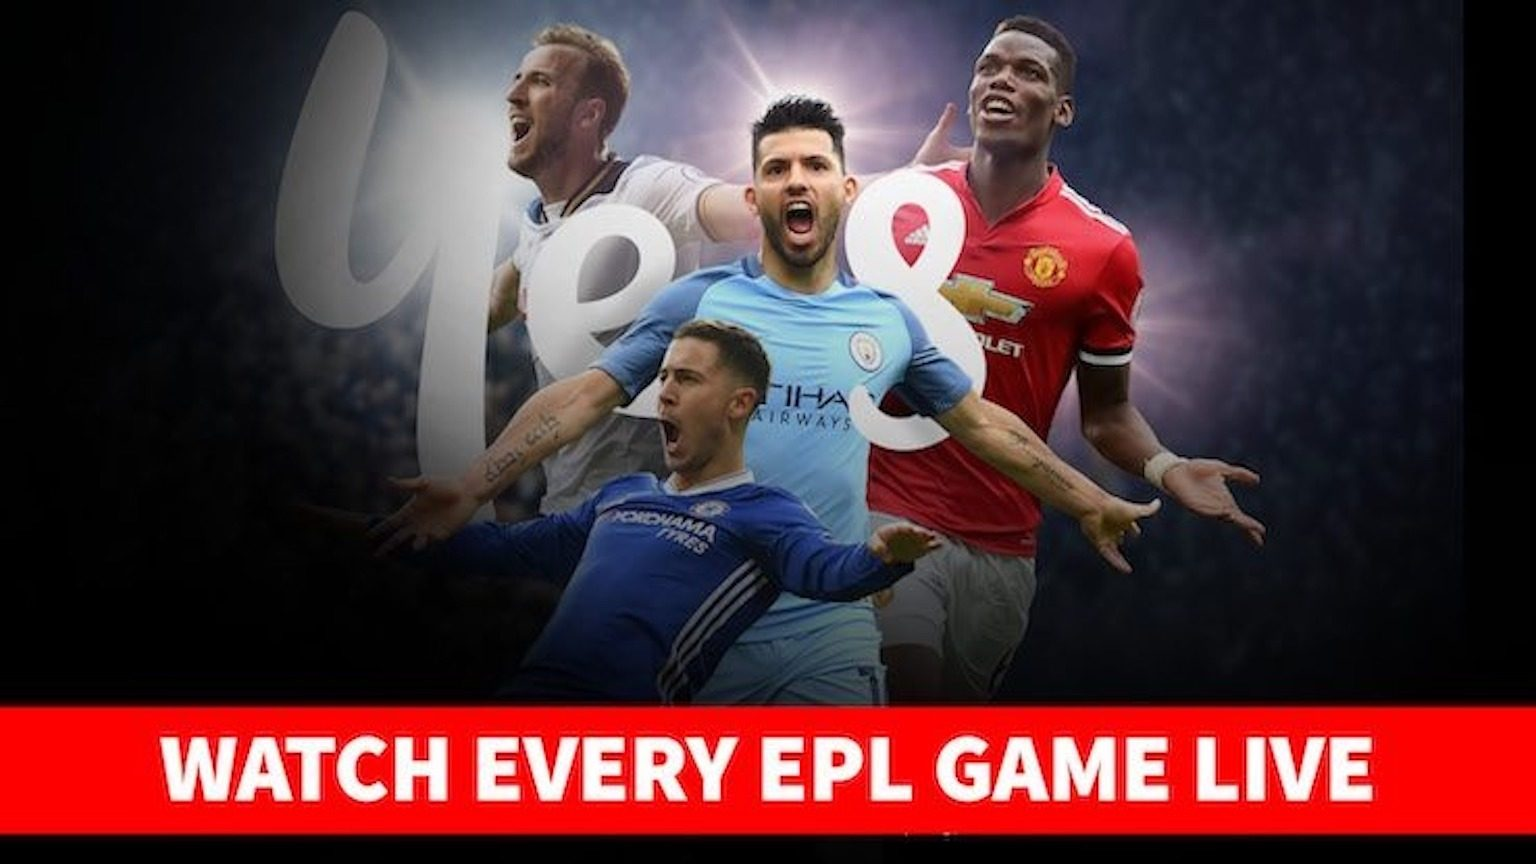 How to stream the English Premier League live in Australia